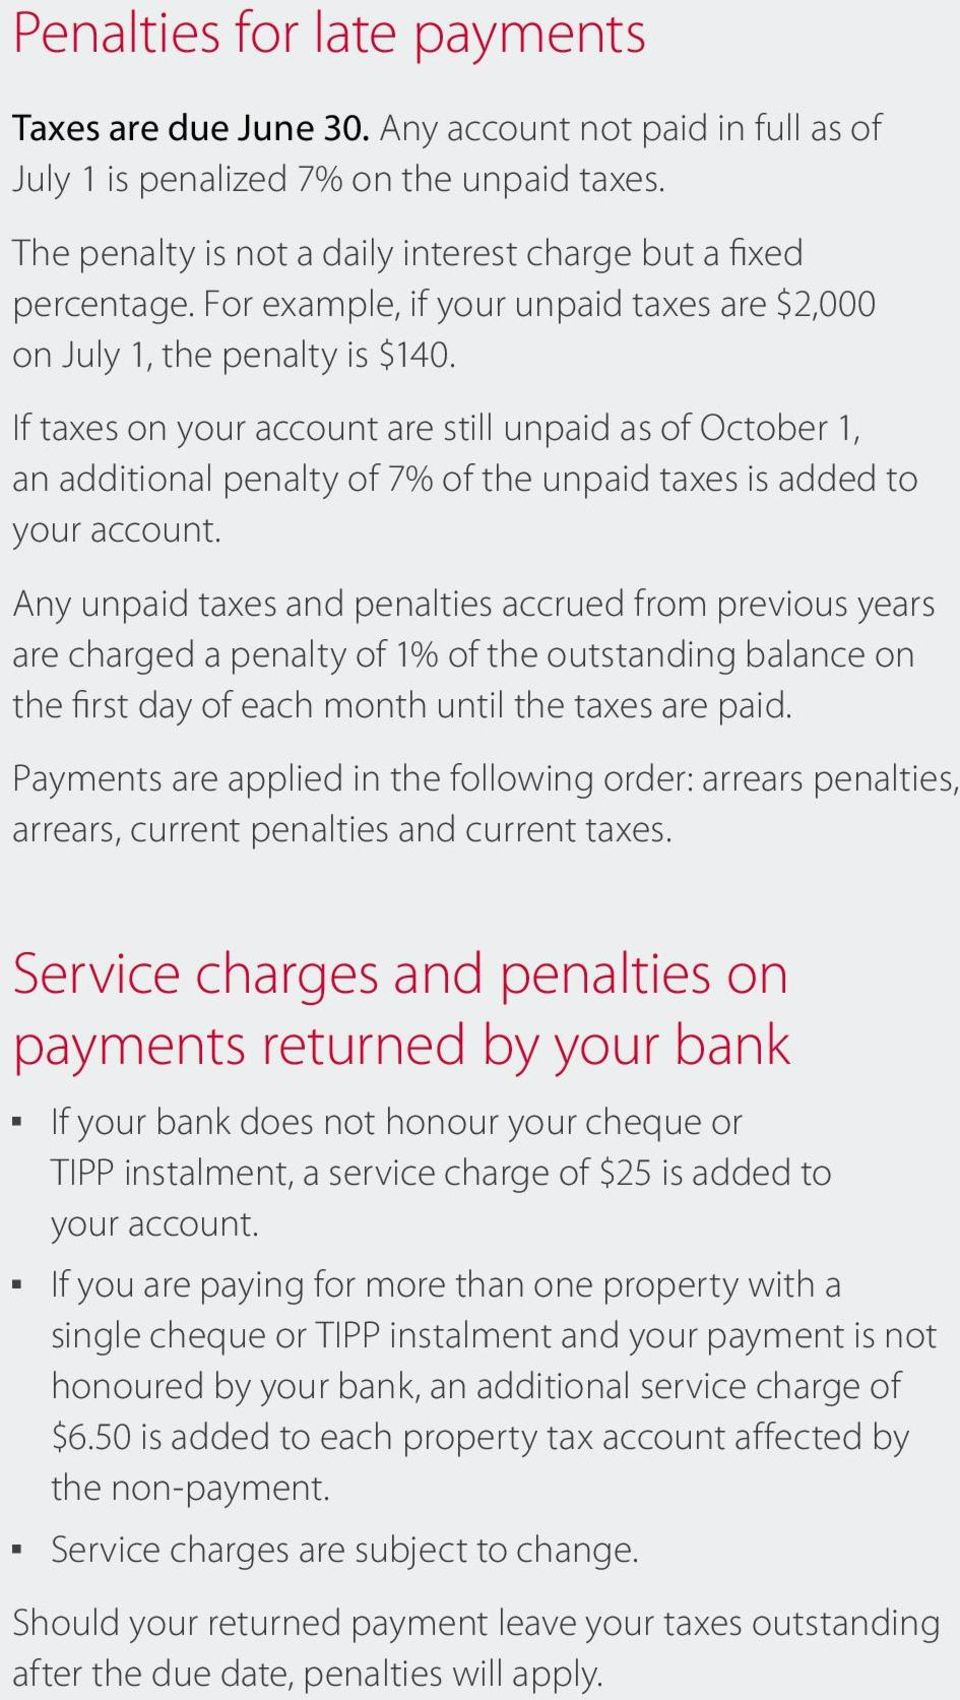 If taxes on your account are still unpaid as of October 1, an additional penalty of 7% of the unpaid taxes is added to your account.